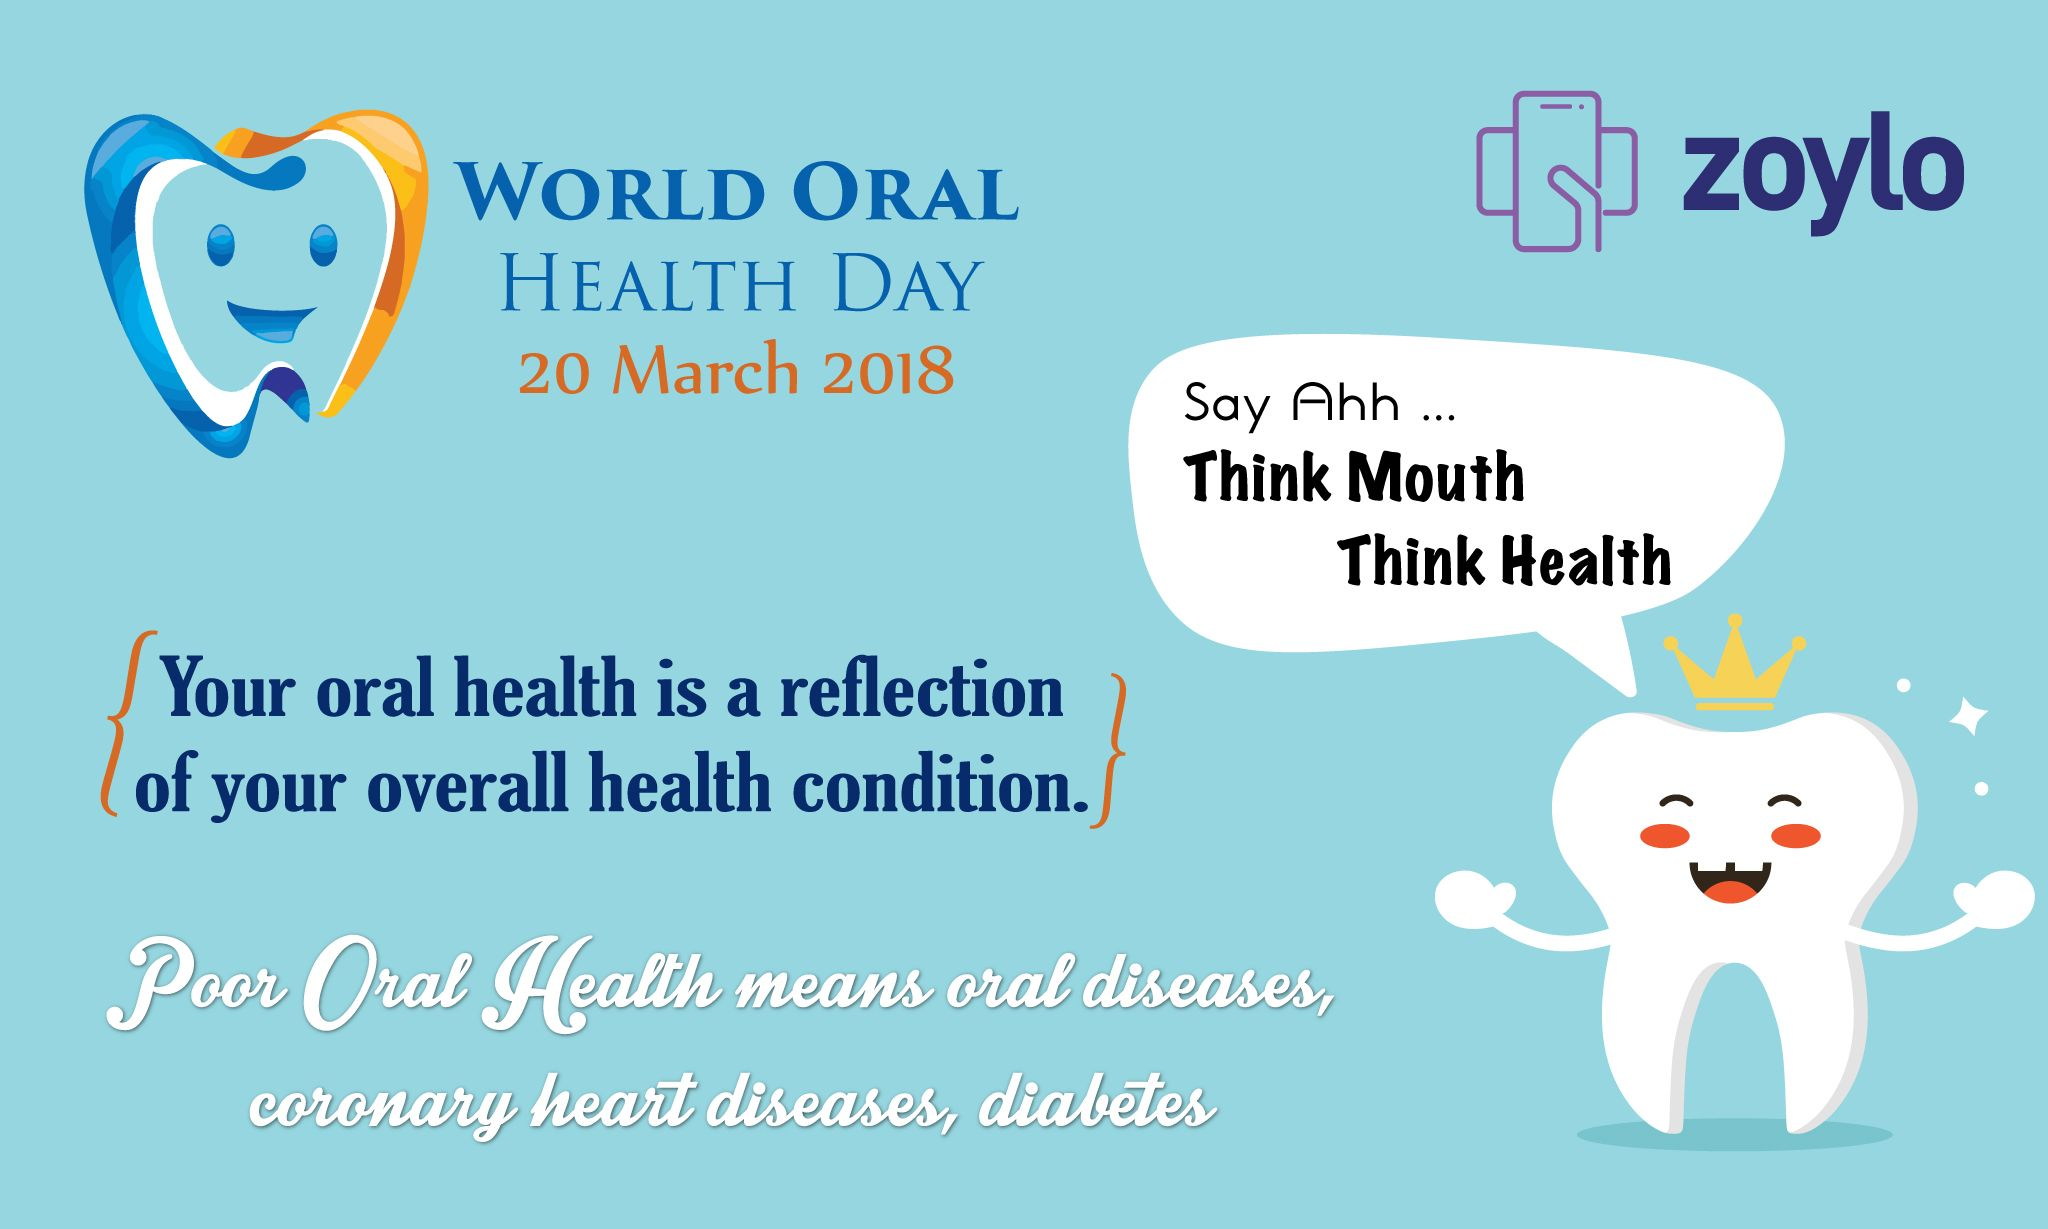 Oral health has been linked with heart health. The